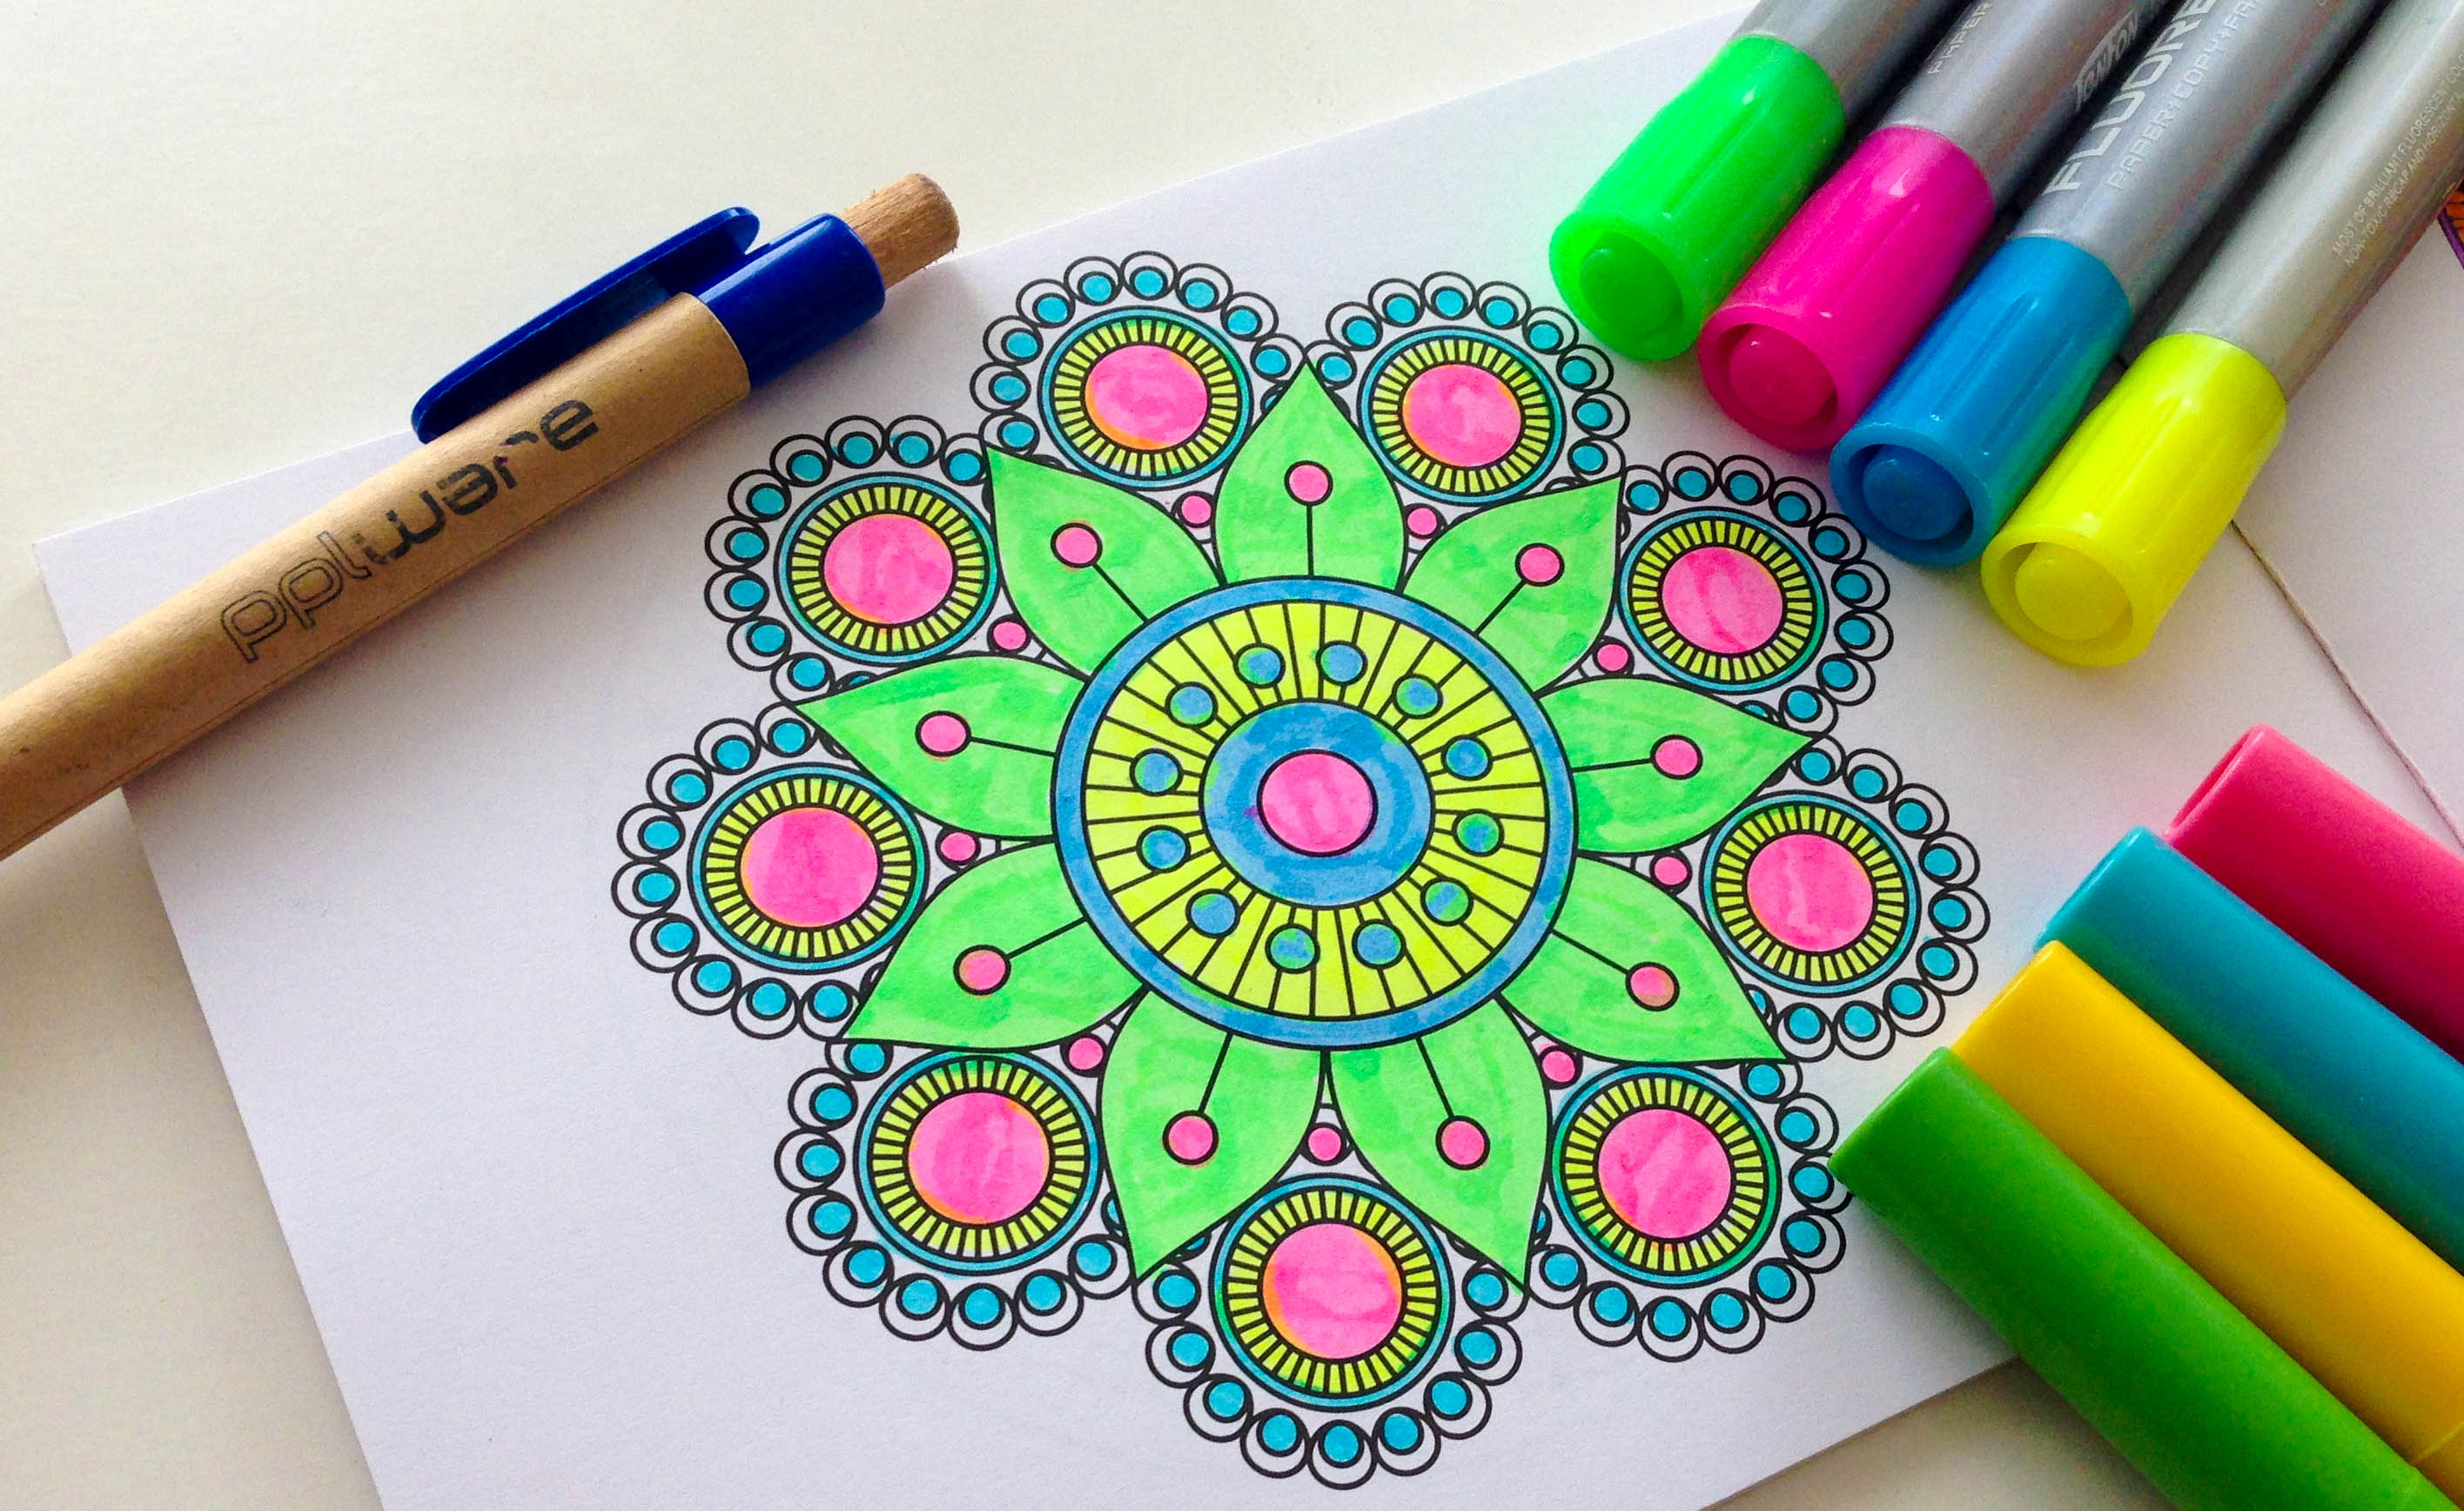 Mandalas apps para colorir tamb m no seu smartphone tablet for Colores para pintar portones